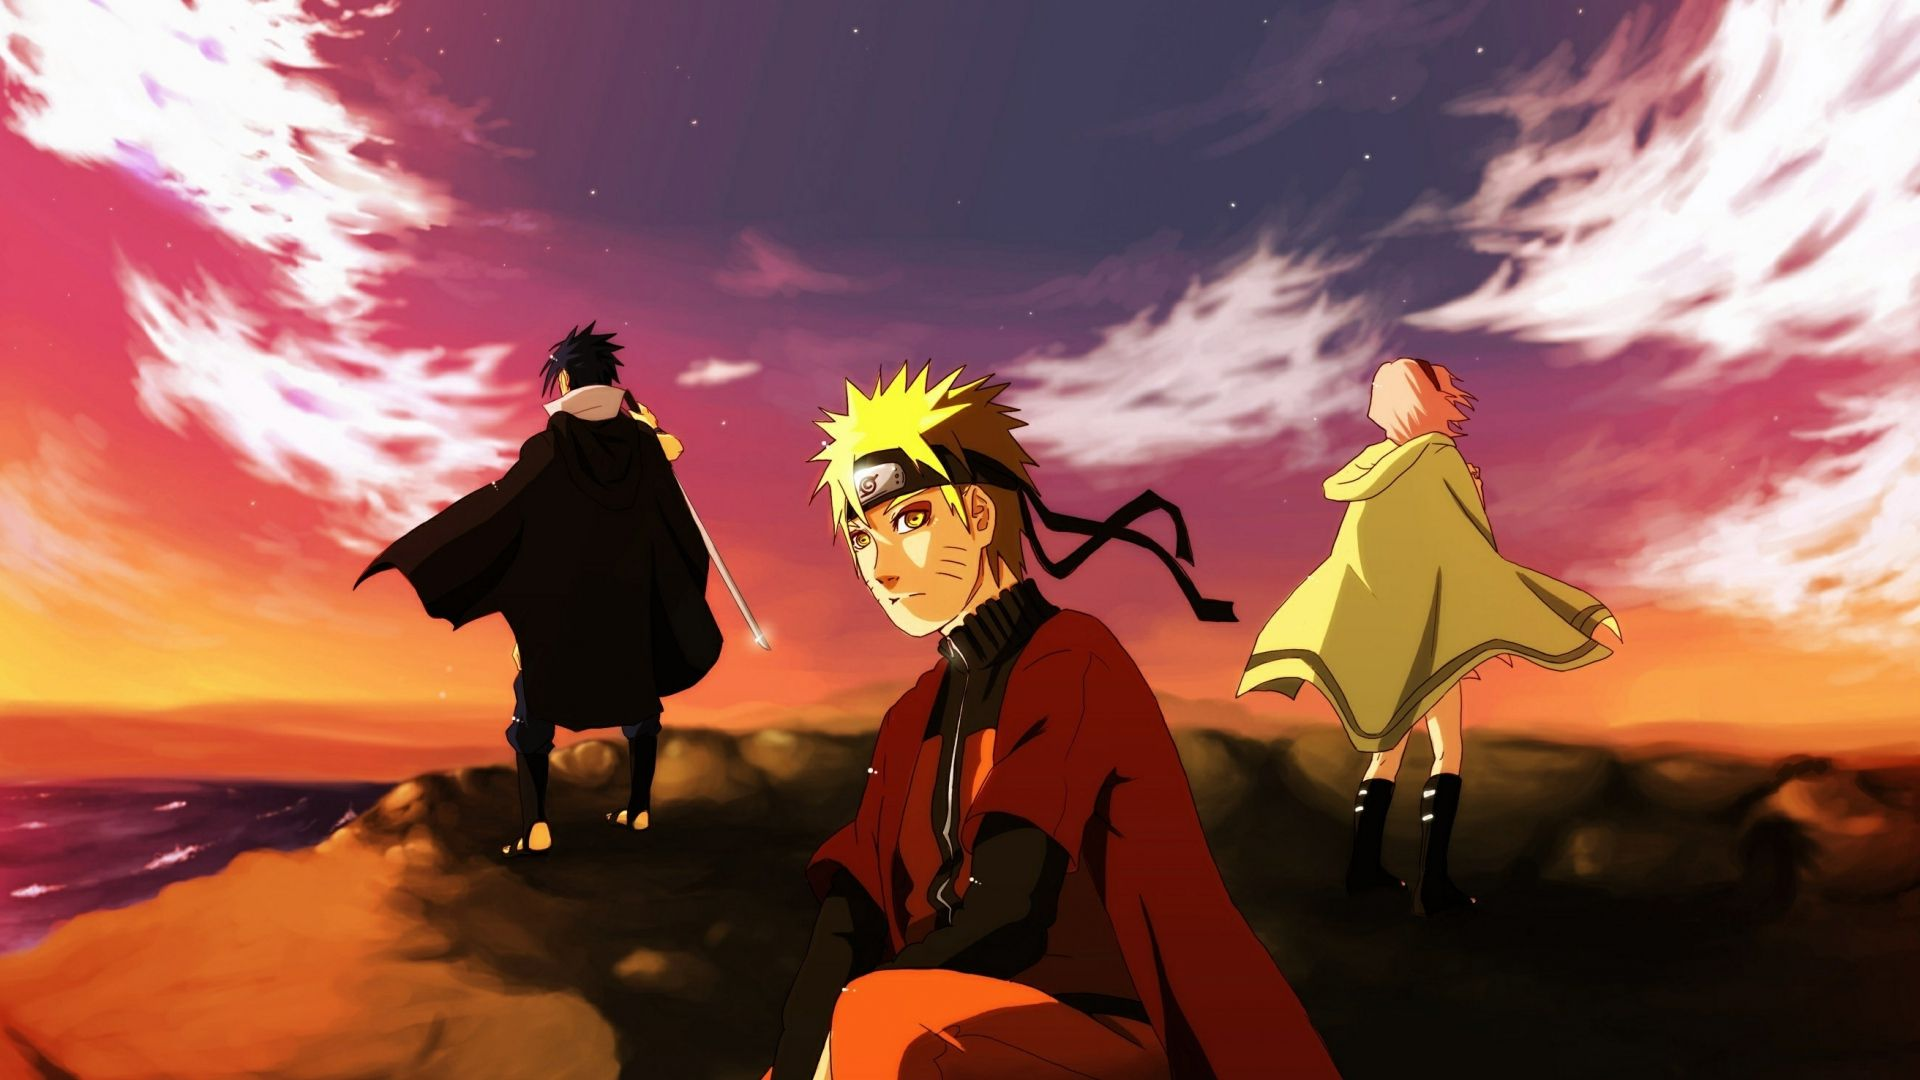 1920x1080 Wallpaper Naruto Team Of Seven Uchiha Sasuke Art Sea